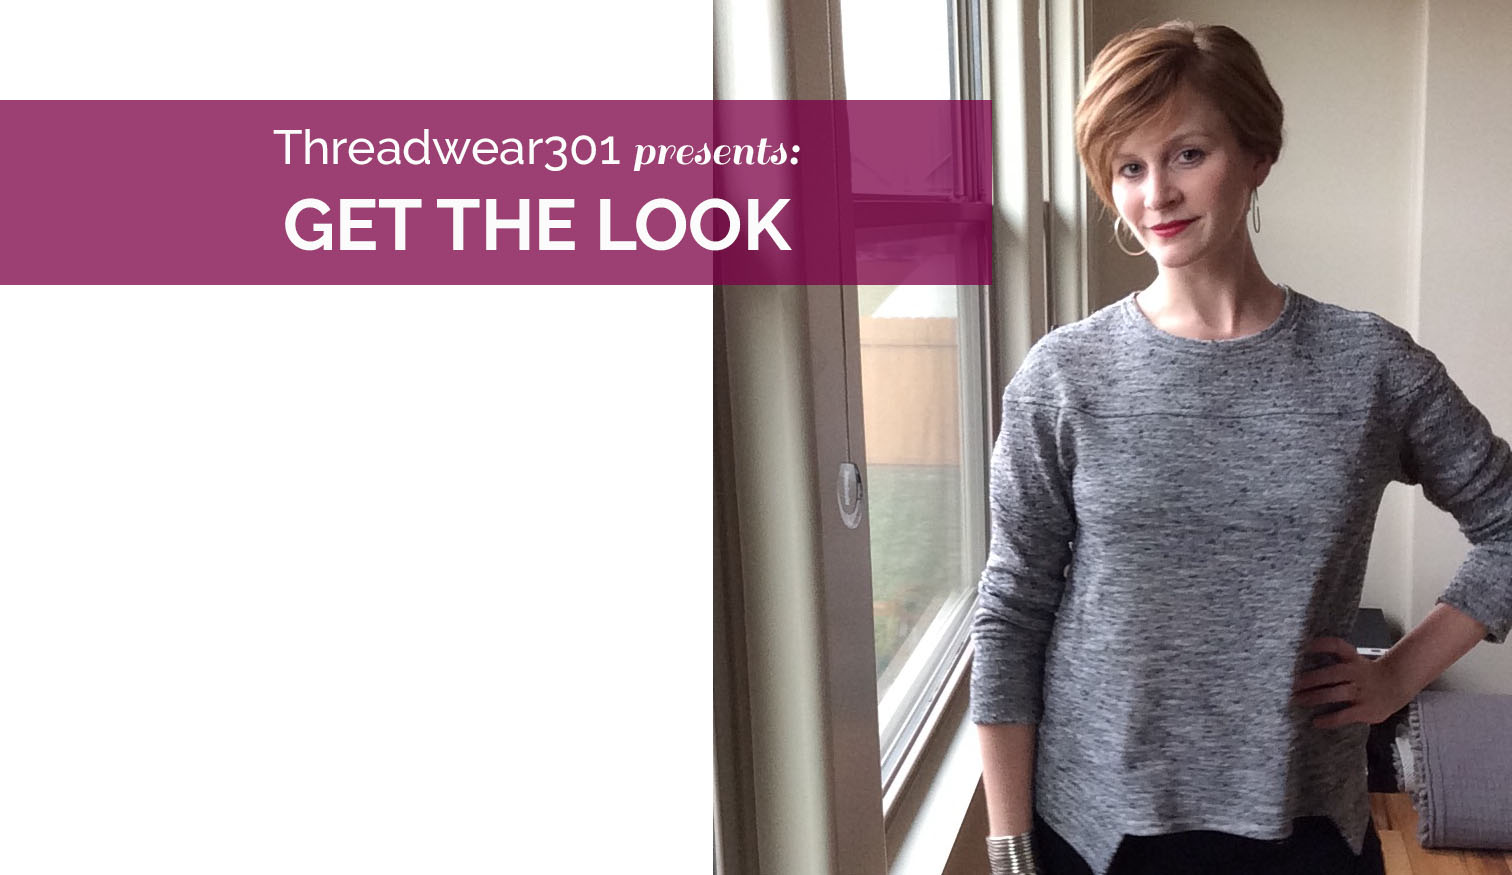 Today's Outfit: Get the Look